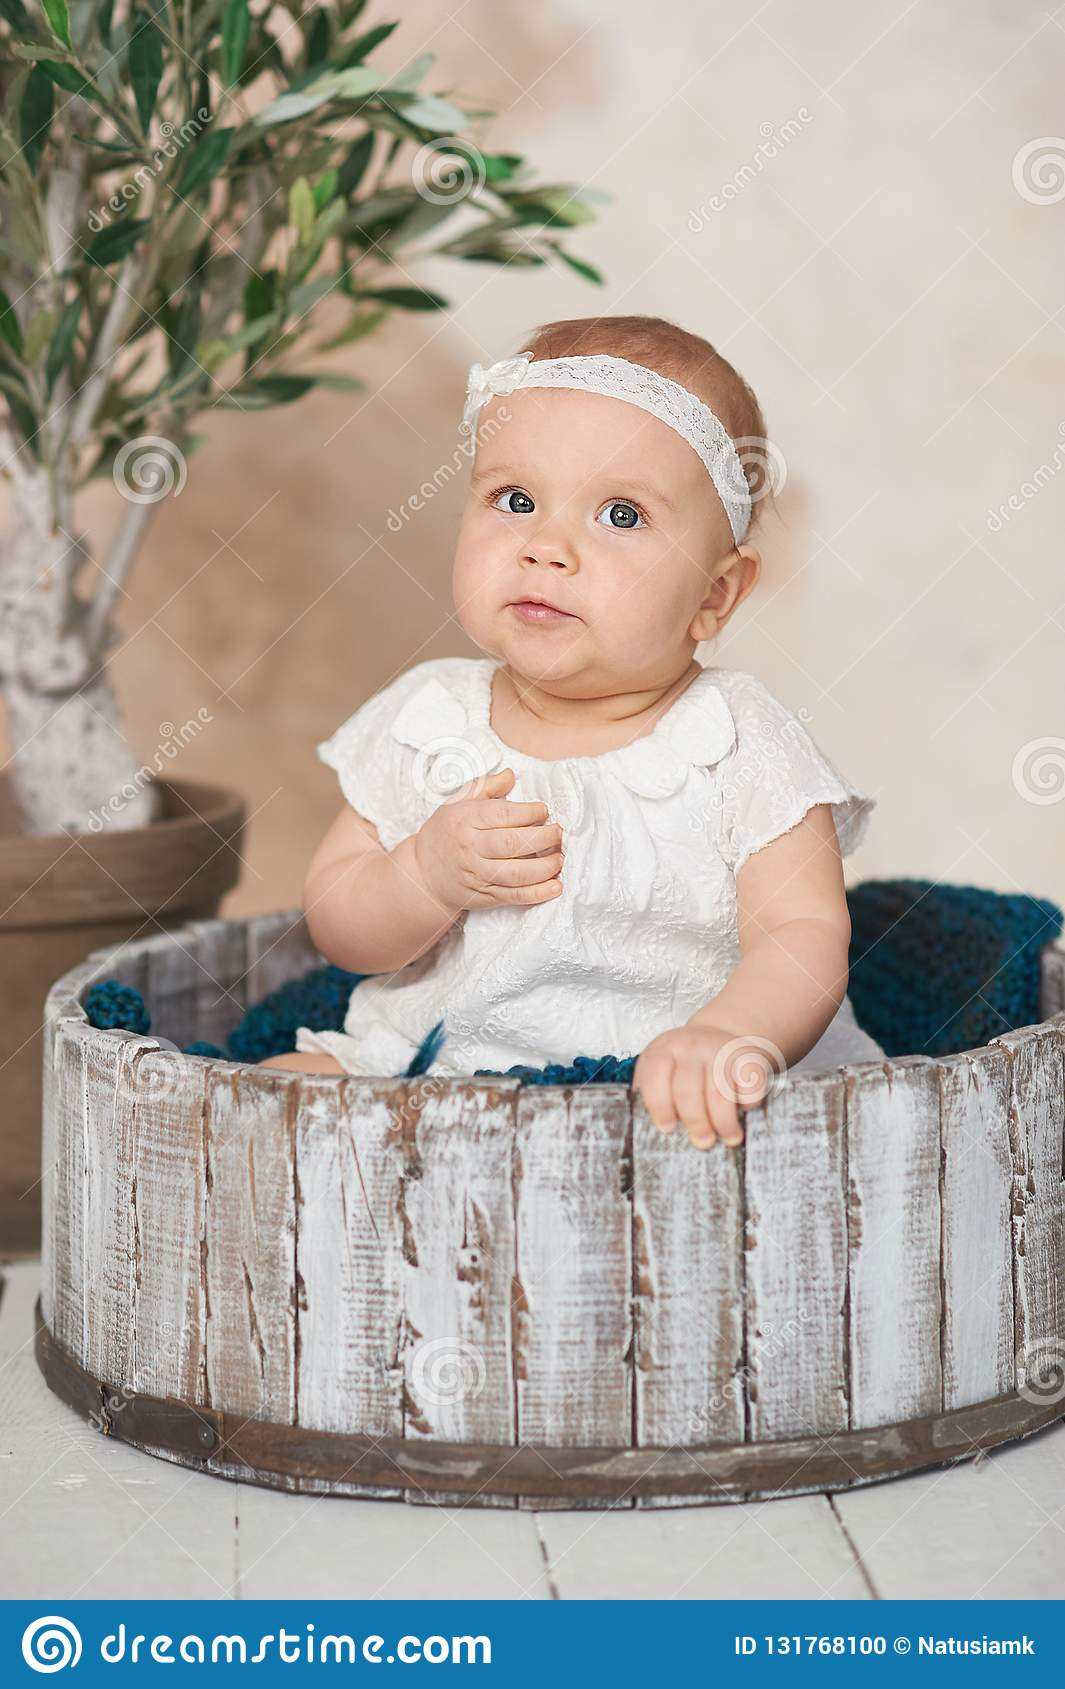 1f182aaf1 Newborn Baby Stock Images - Download 190